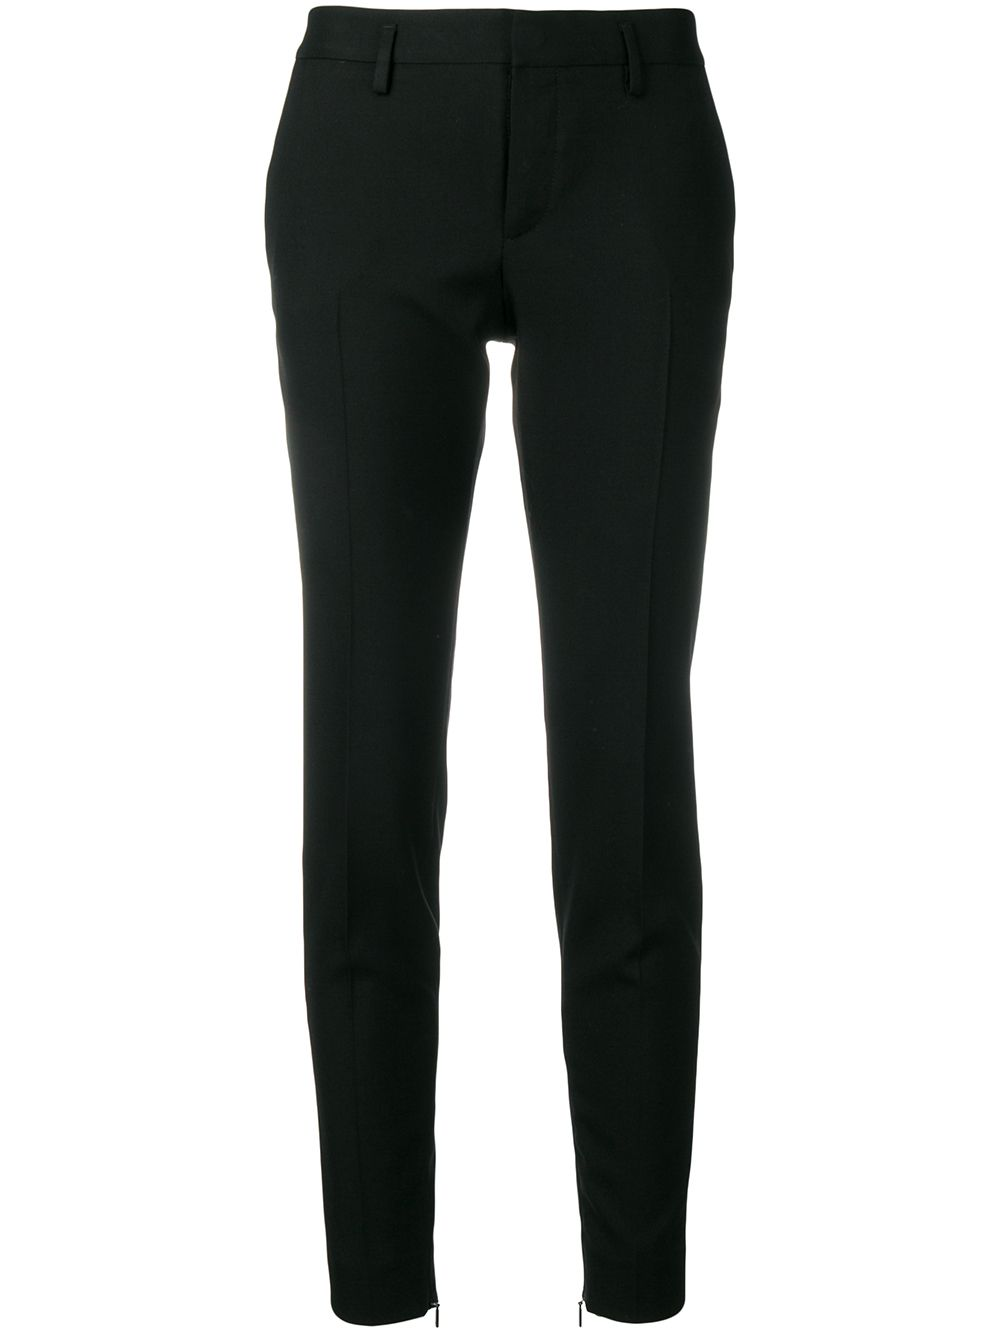 Saint Laurent tuxedo skinny trousers - Black von Saint Laurent